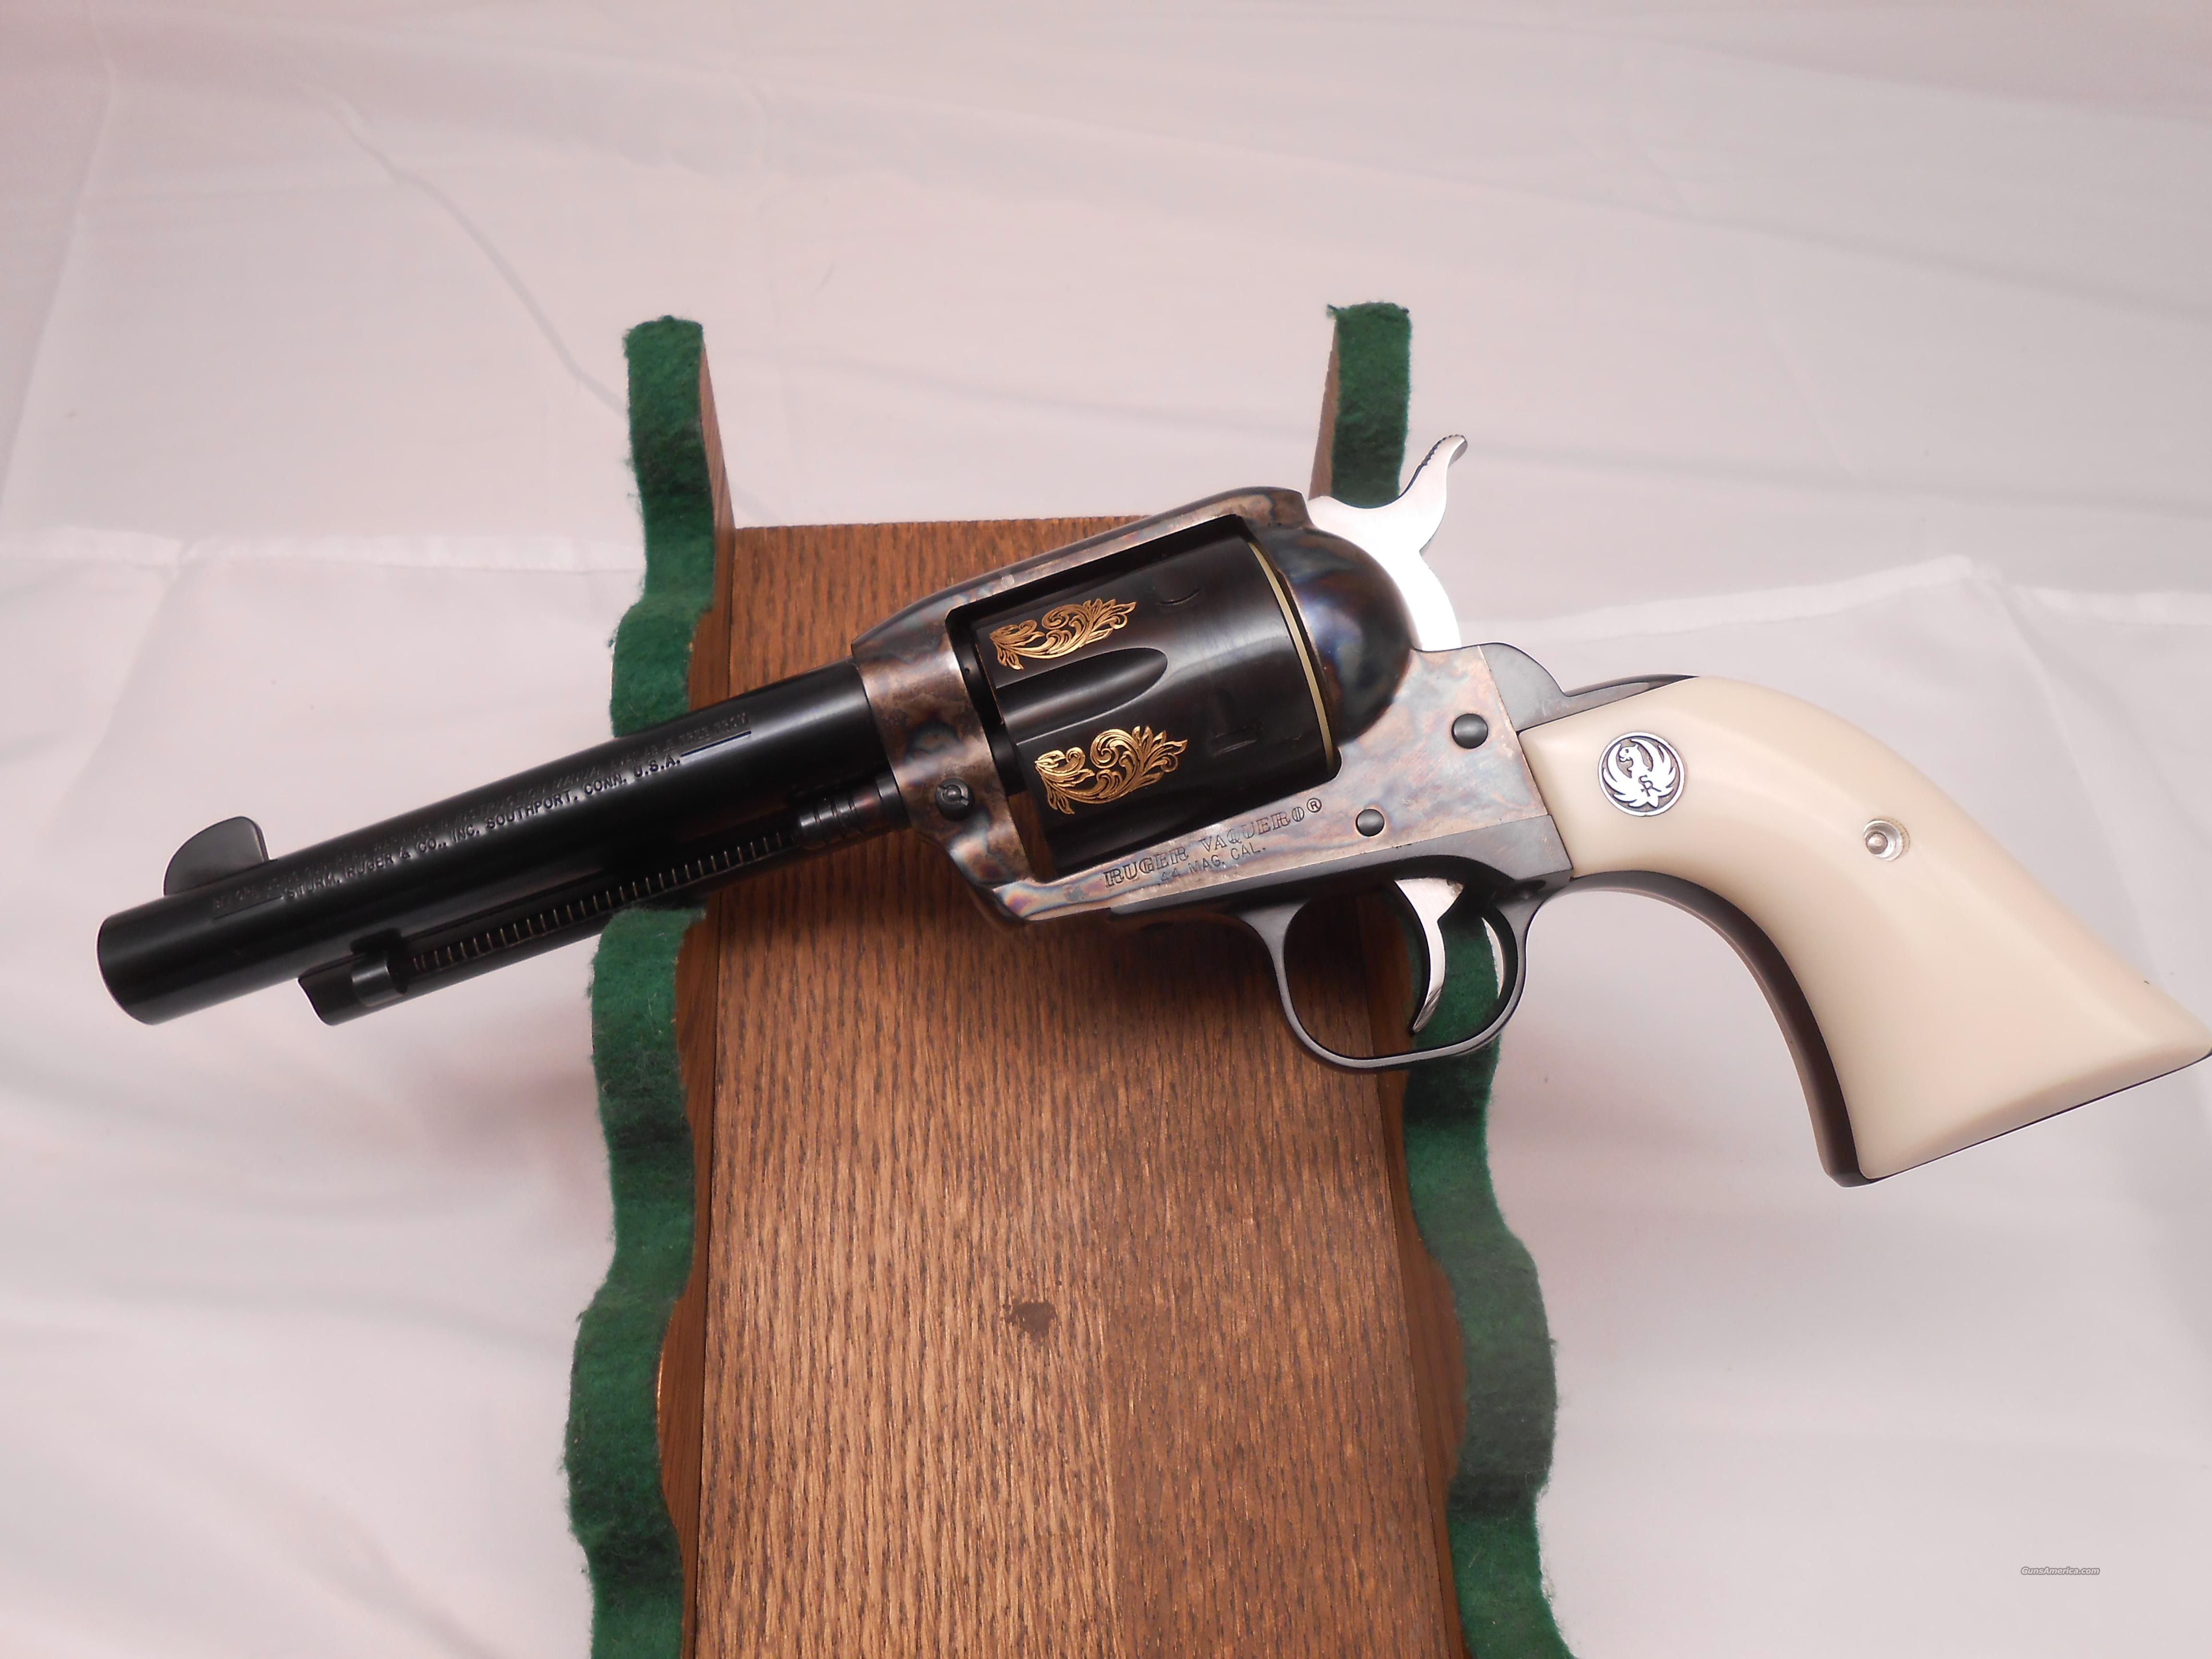 Engraved Ruger  Vaquero 44  Guns > Pistols > Ruger Single Action Revolvers > Cowboy Action